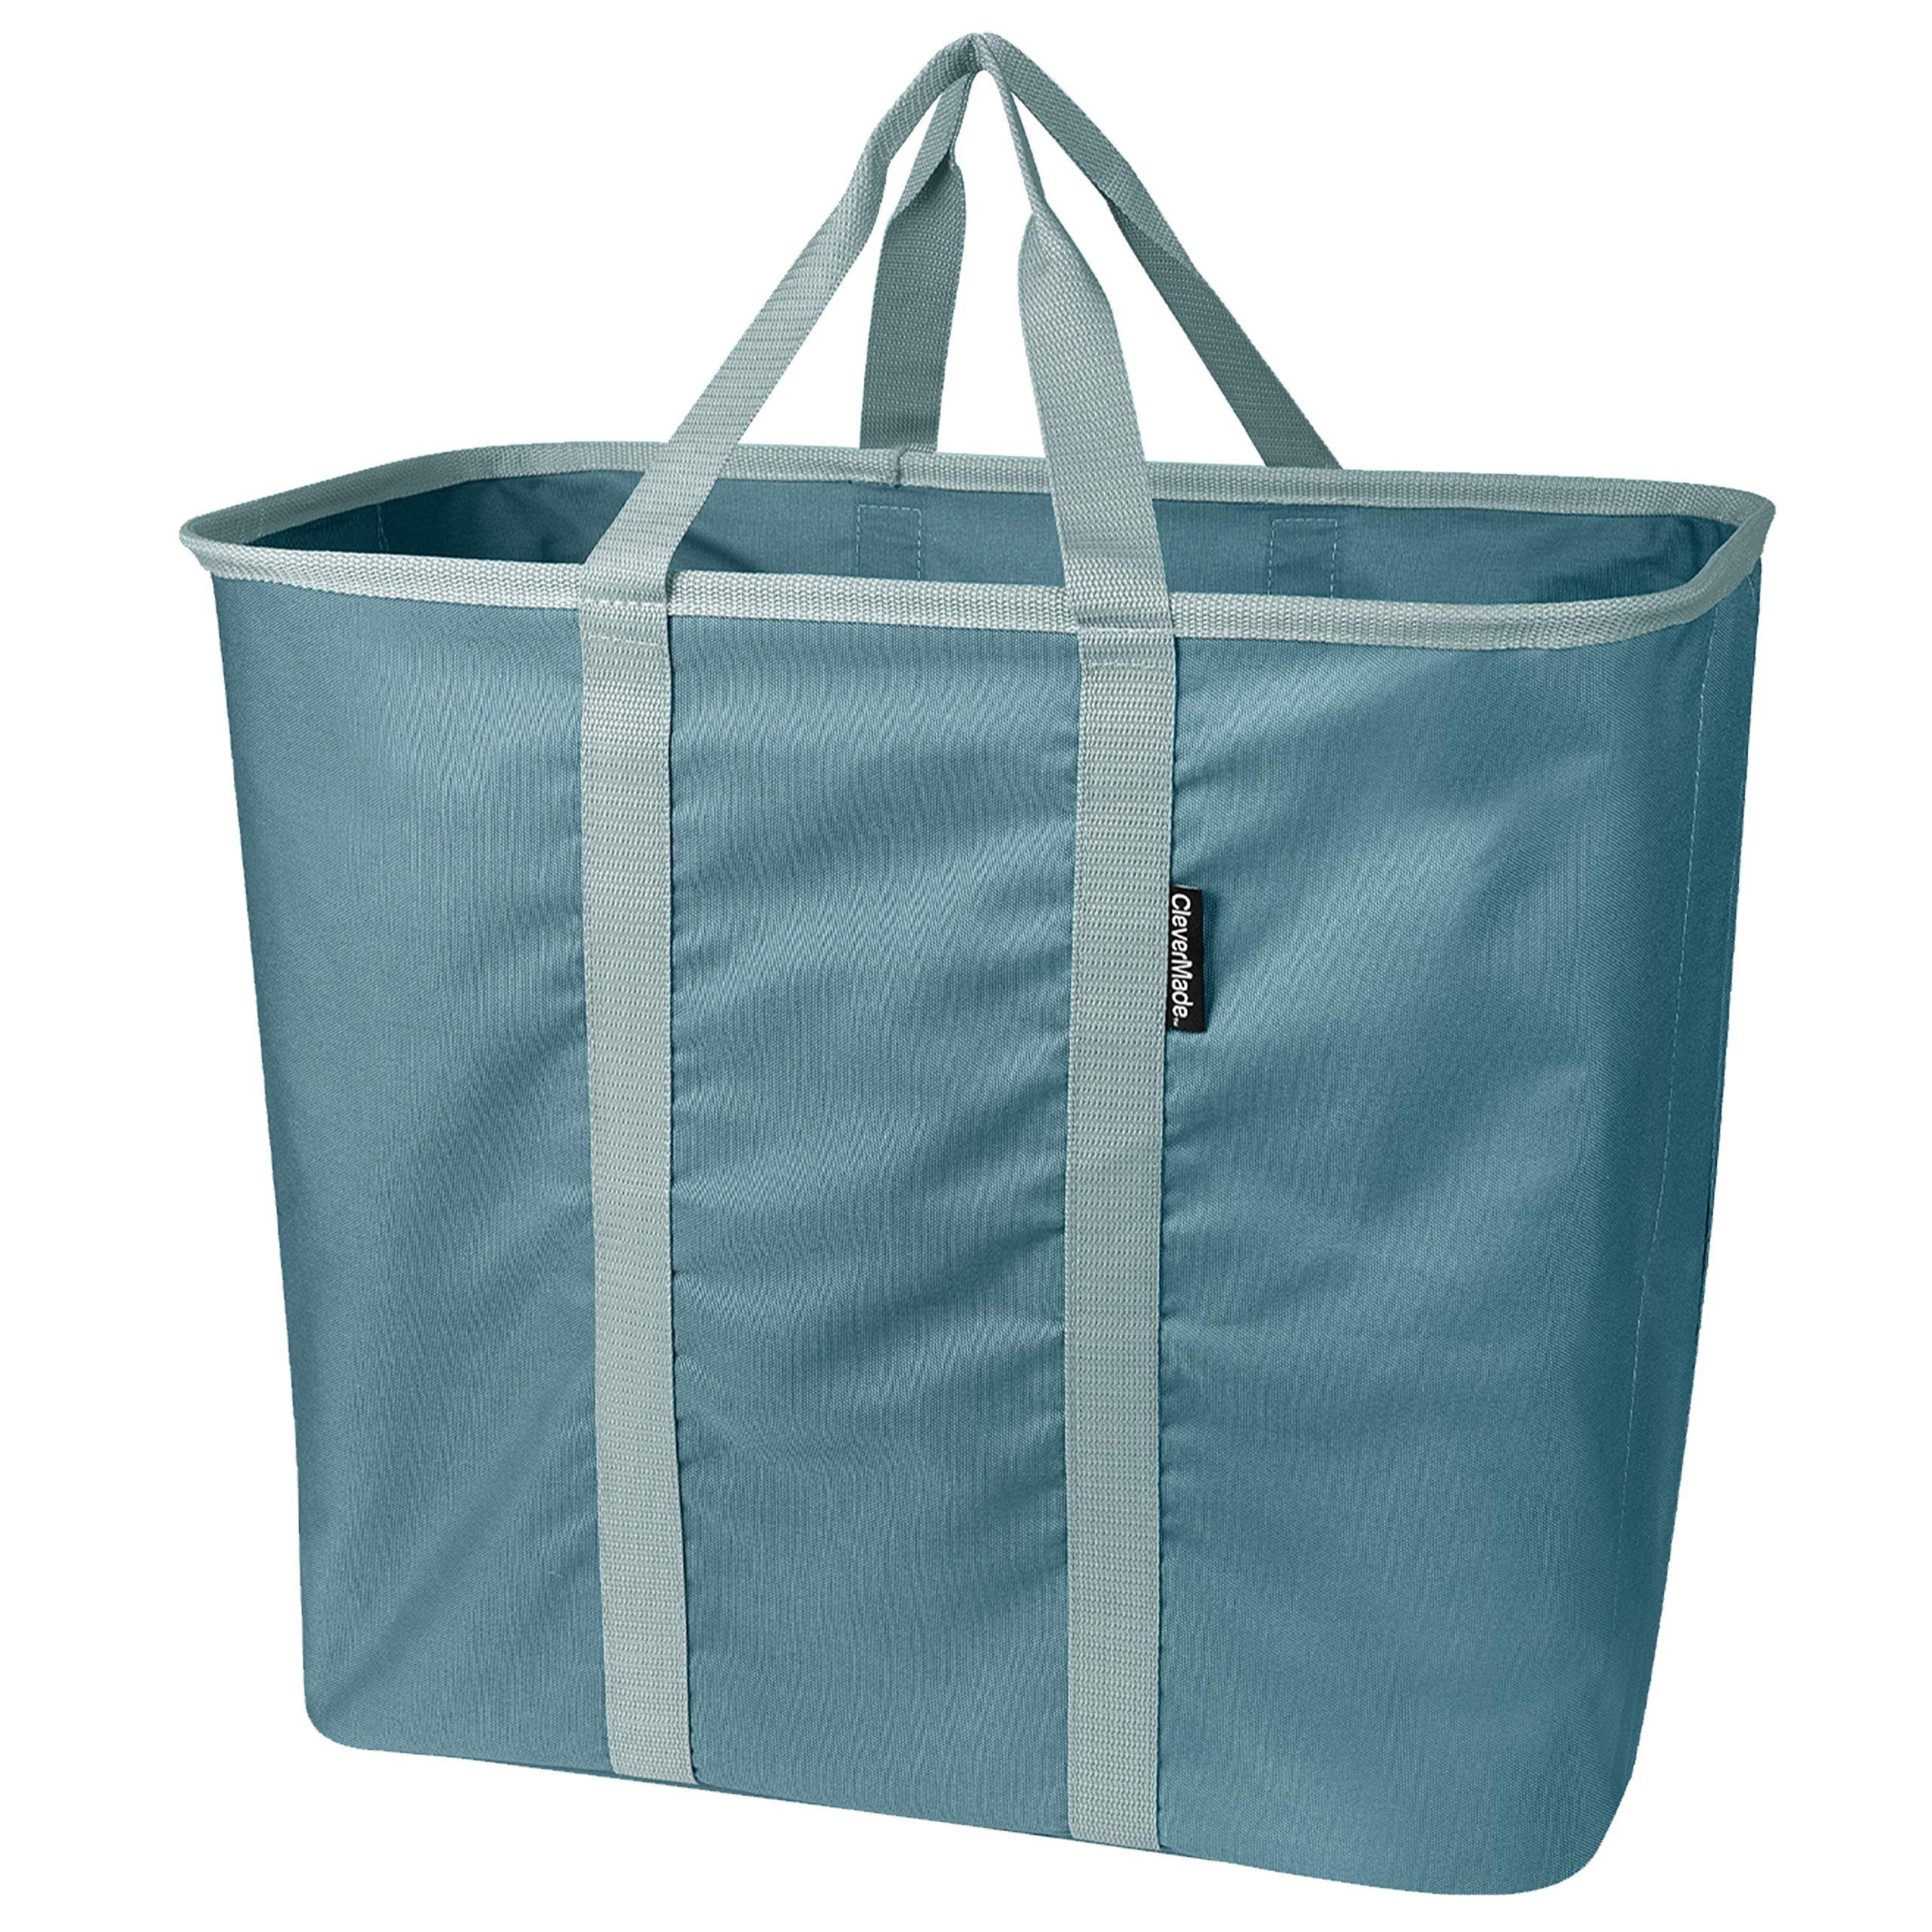 Clothing & Wardrobe Storage Home & Garden Capable Foldable High Capacity Storage Bag Clothes Blanket Quilt Closet Sweater Organizer Box Pouches Storage Bag Wide Varieties